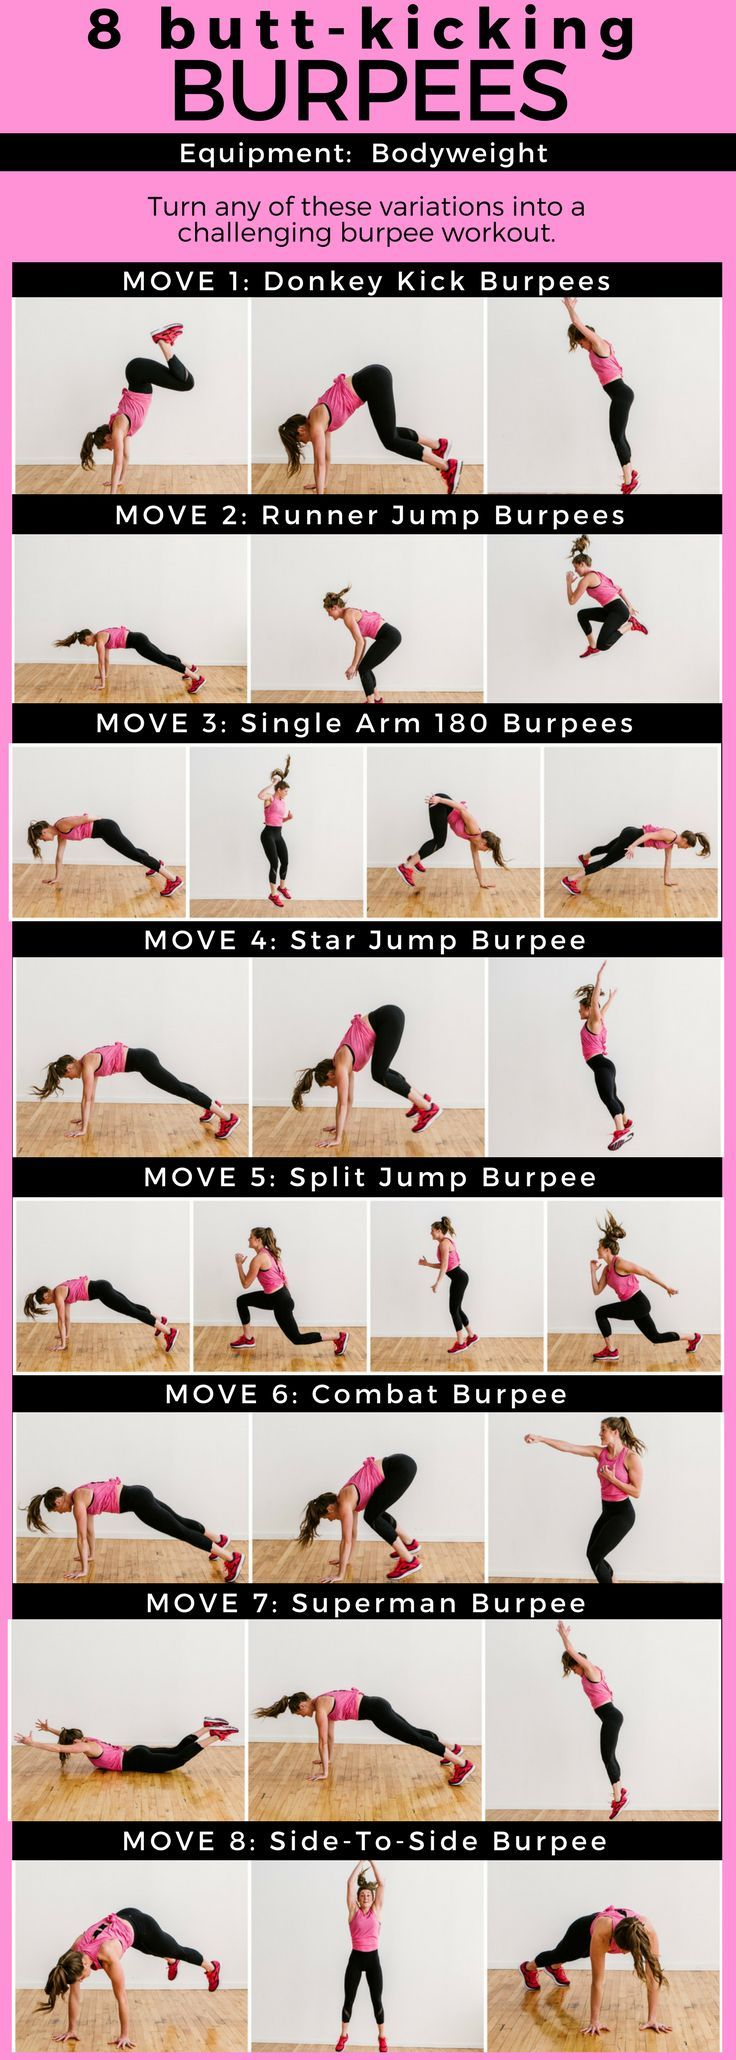 8 Butt-Kicking Burpees + 16 Minute EMOM Workout | burpees I burpees workout I burpee exercises I at home workout I total body workout II Nourish Move Love I #burpees I #athomeworkout I #fitmom